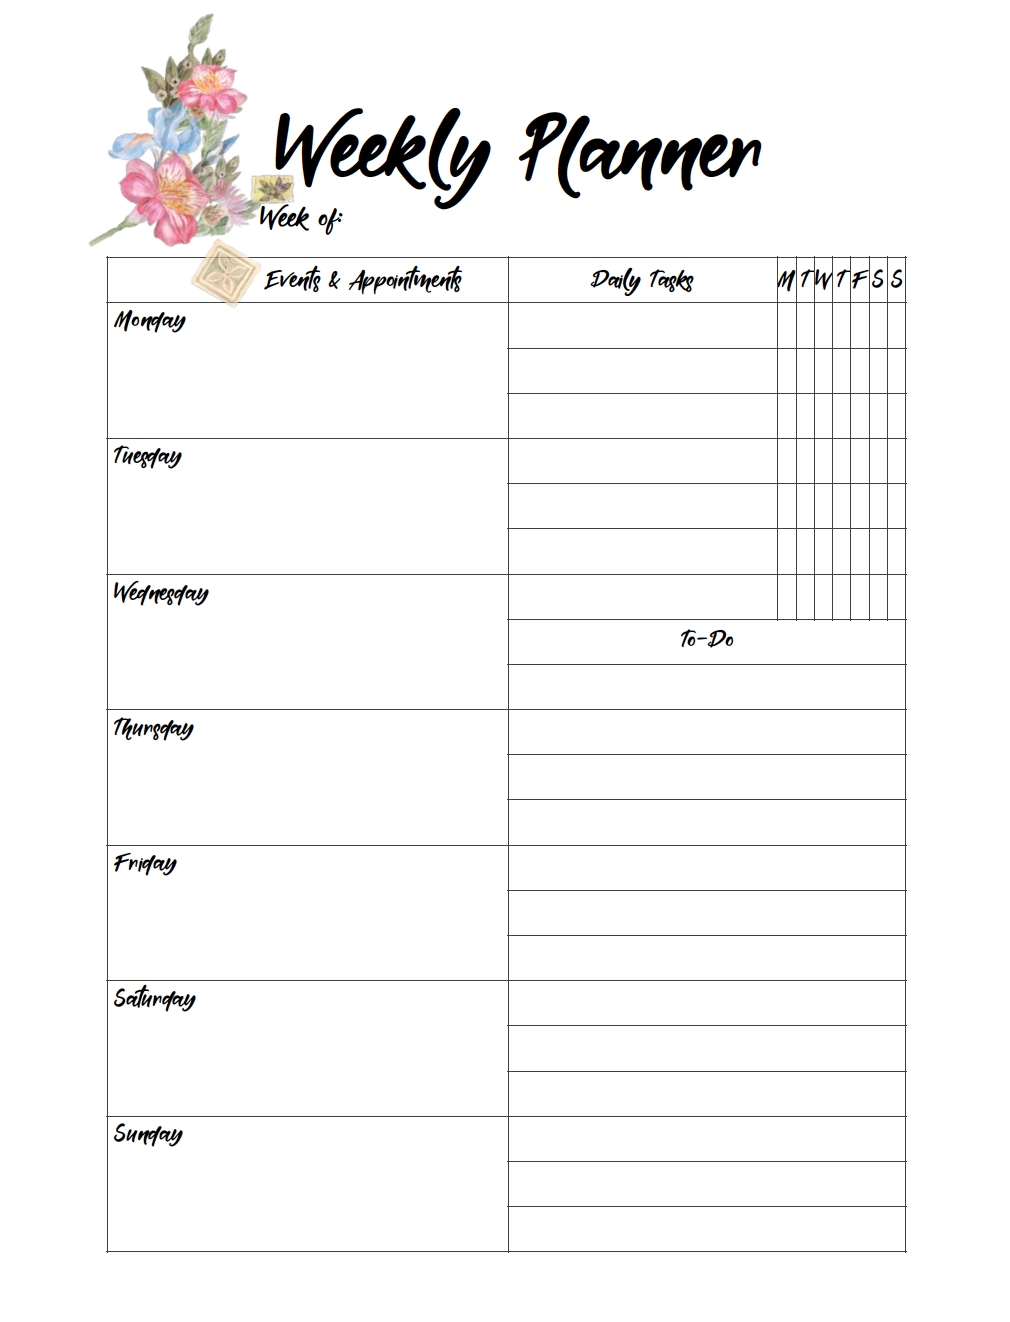 Free Printable Weekly Planners: Monday Start intended for Weekly Agenda Monday Through Friday